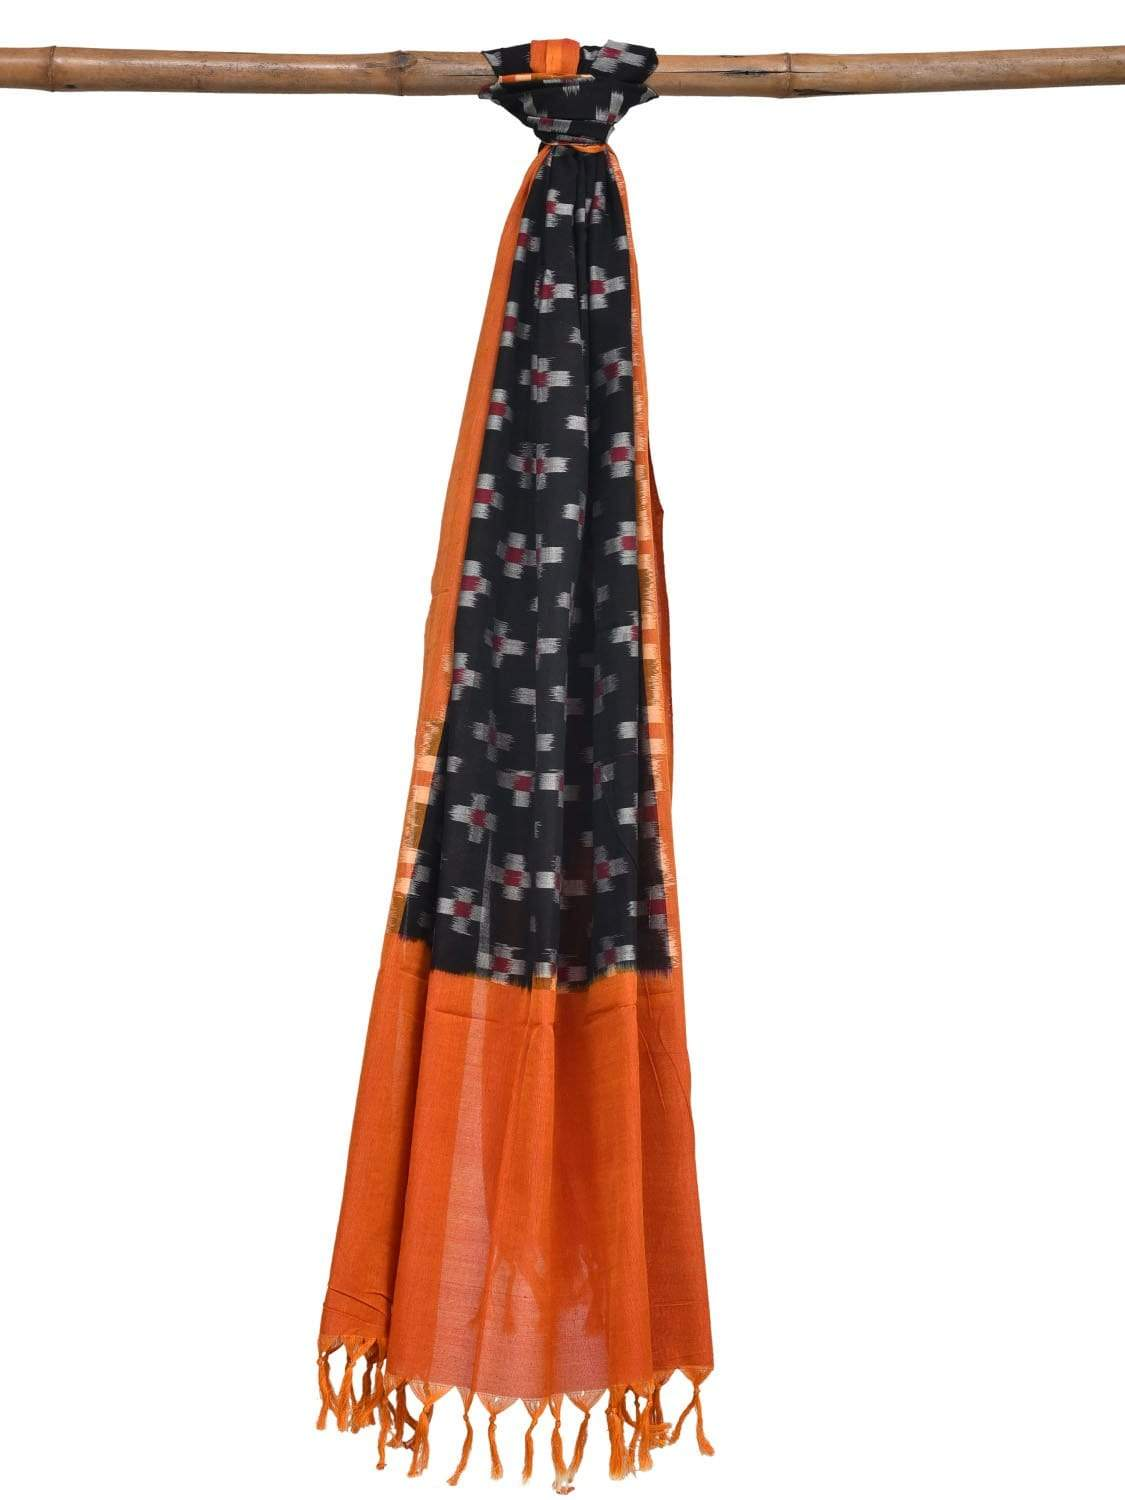 Orange and Black Pochampally Ikat Cotton Handloom Dupatta with Plus Buta Design ds1888